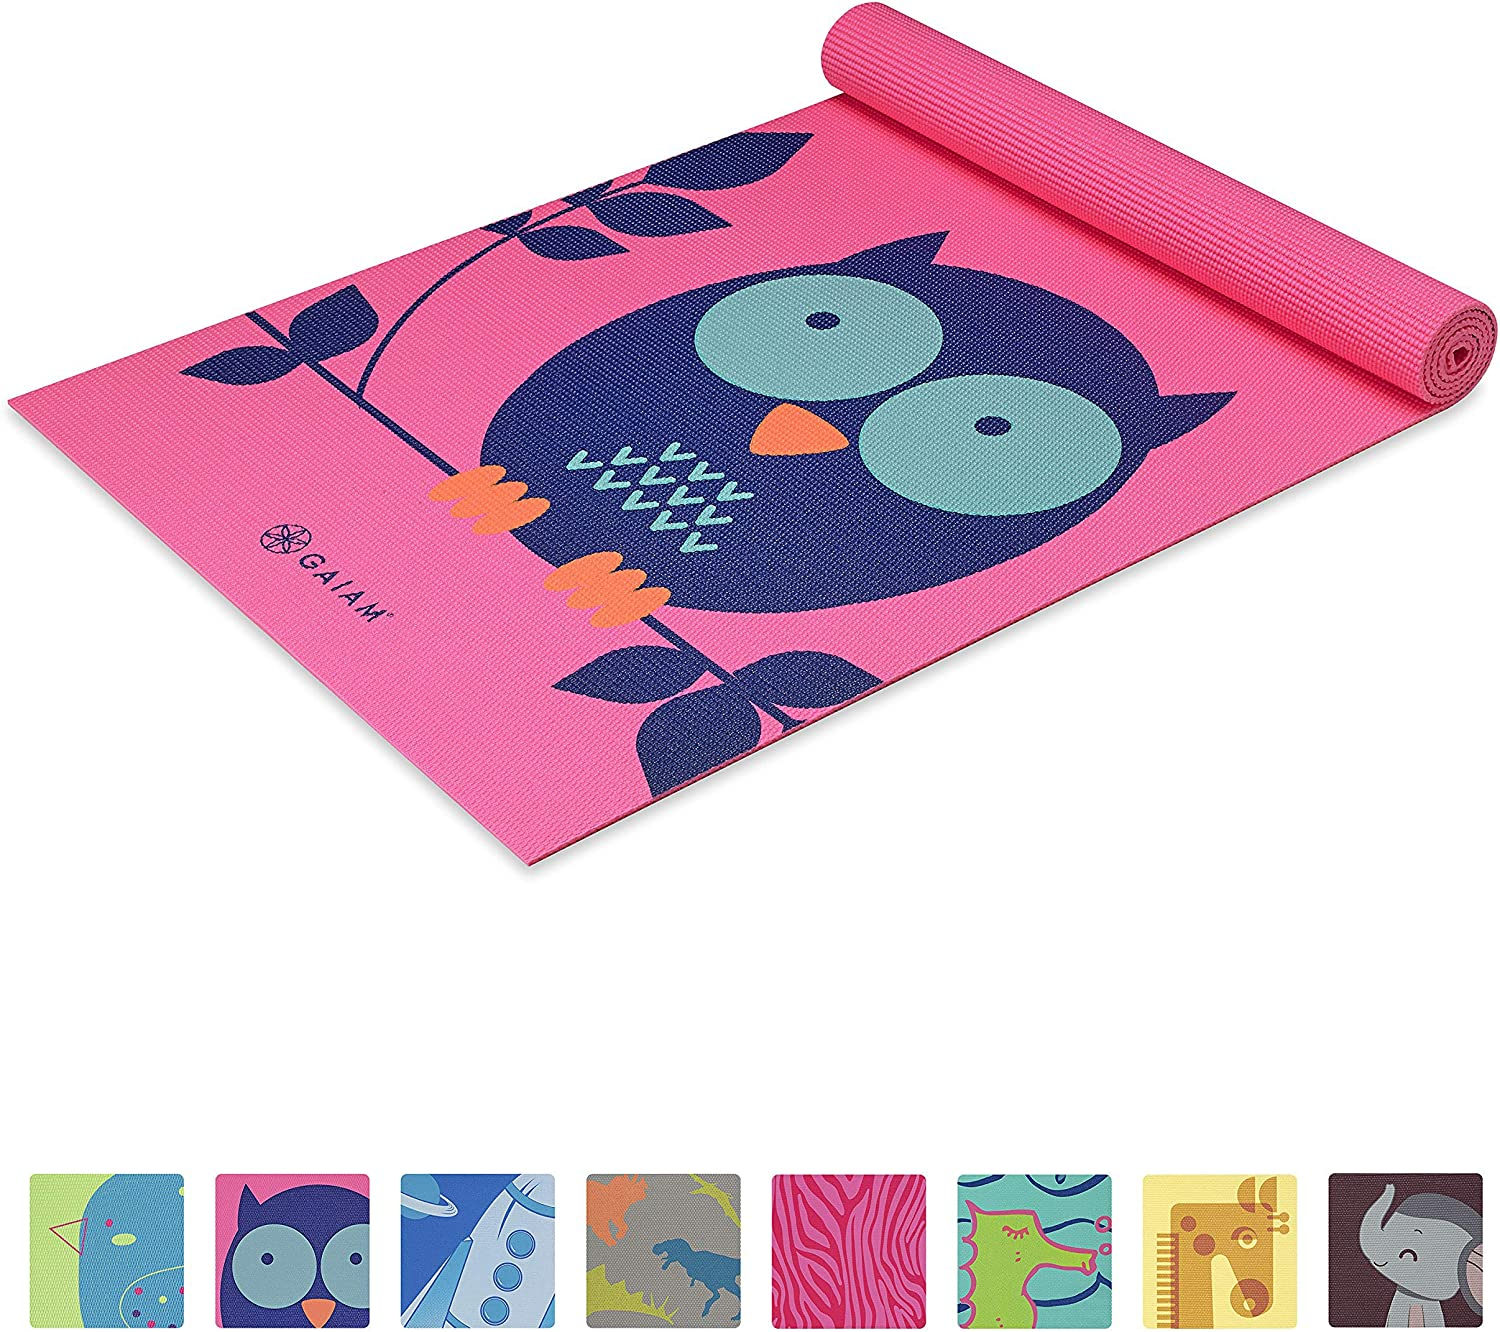 Gaiam Kids Yoga Mat Exercise Mat, Yoga for Kids with Fun Prints - Playtime for Babies, Active & Calm Toddlers and Young Children, Owl, 3mm : Sports & Outdoors